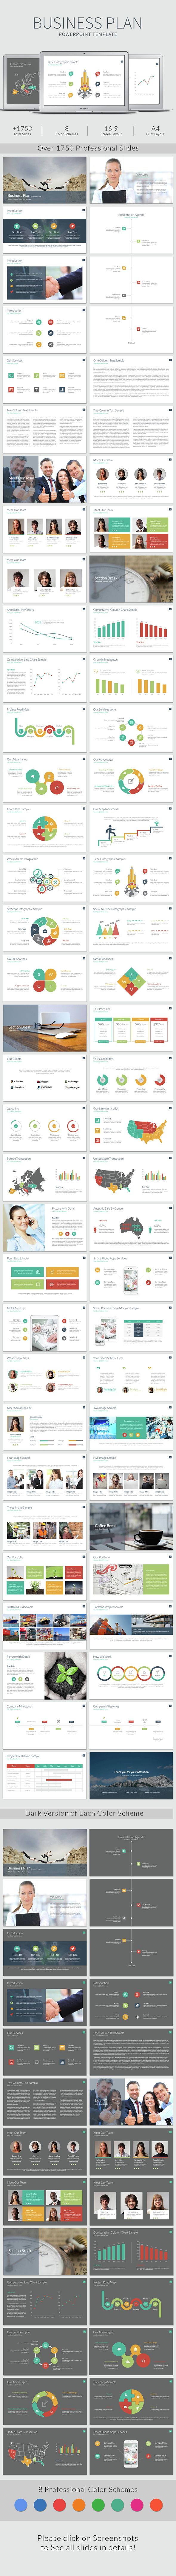 Business Plan PowerPoint Template. Download here: http://graphicriver.net/item/business-plan-presentation-template/14833526?ref=ksioks